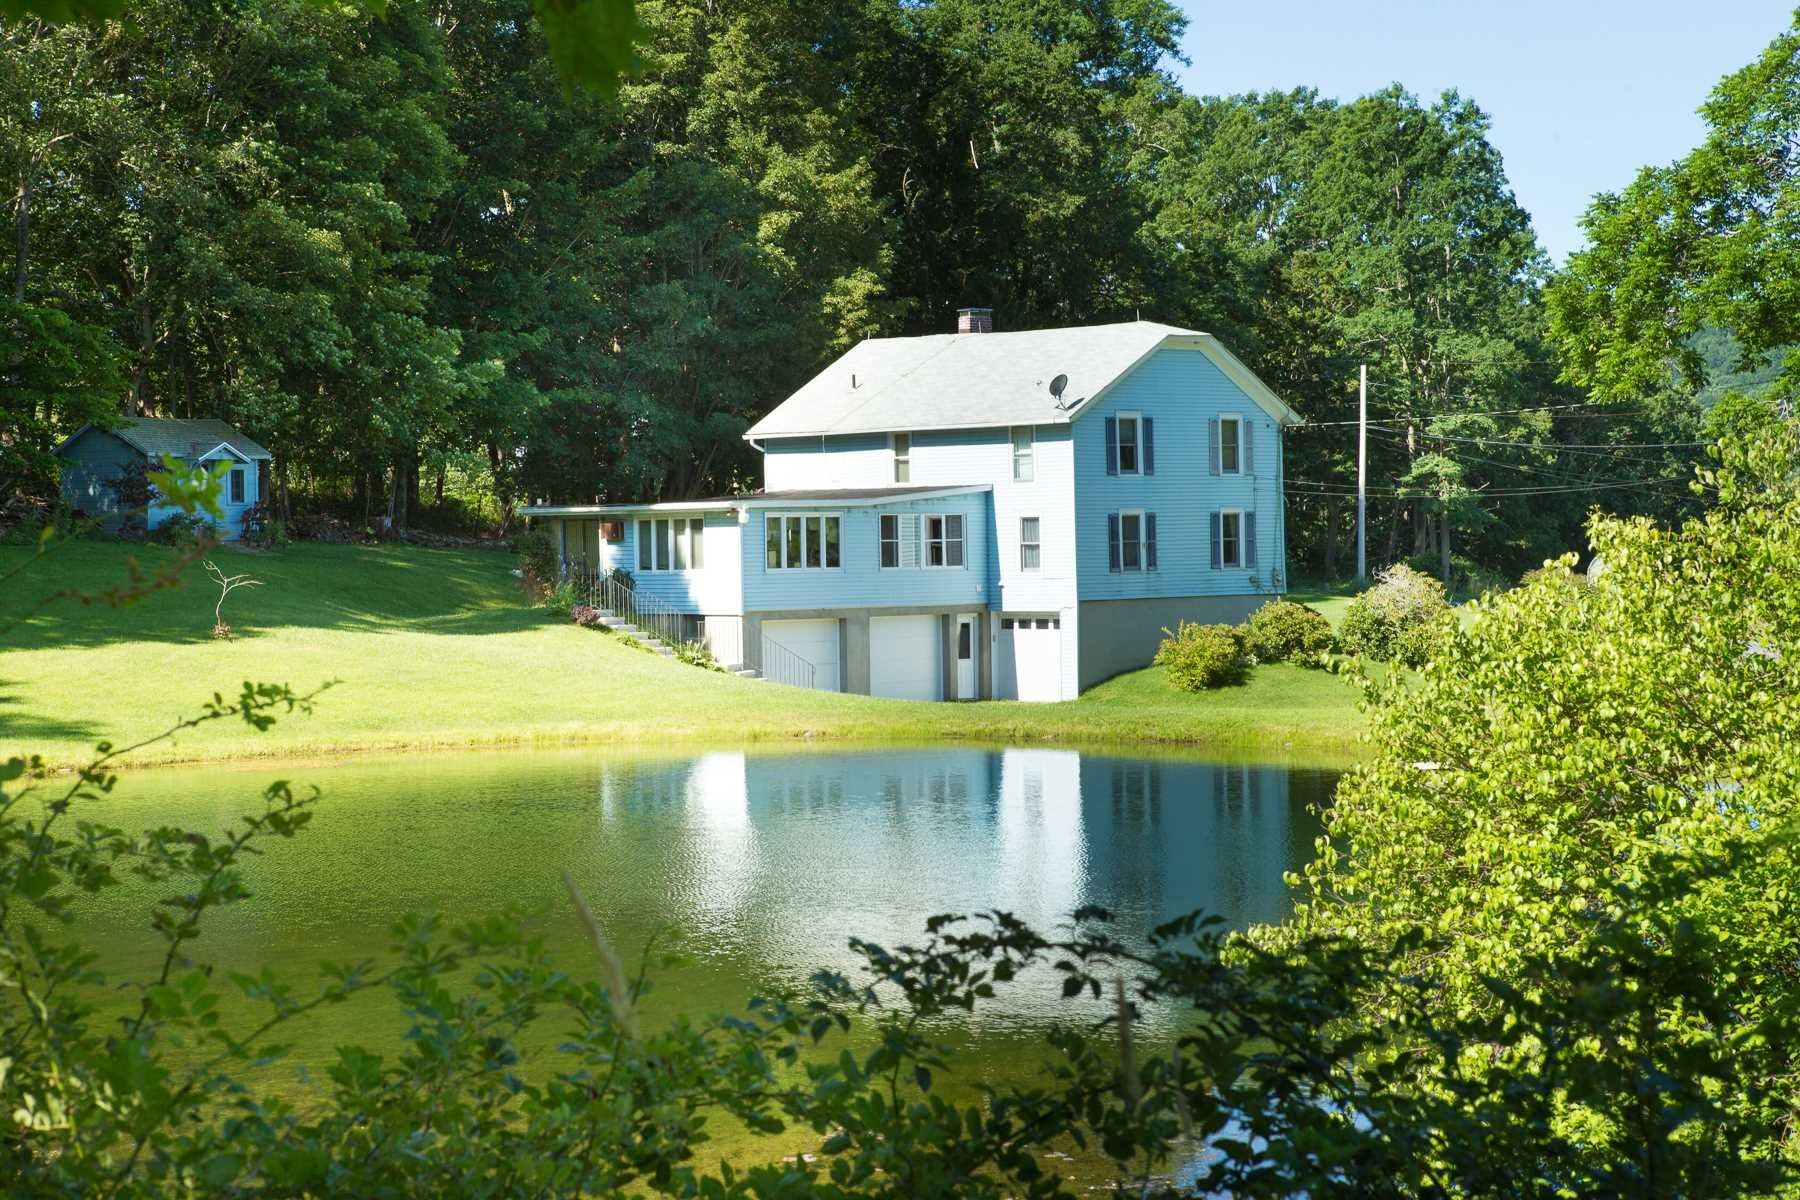 Single Family Home for Sale at 2250 CLOVE ROAD 2250 CLOVE ROAD Union Vale, New York 12540 United States